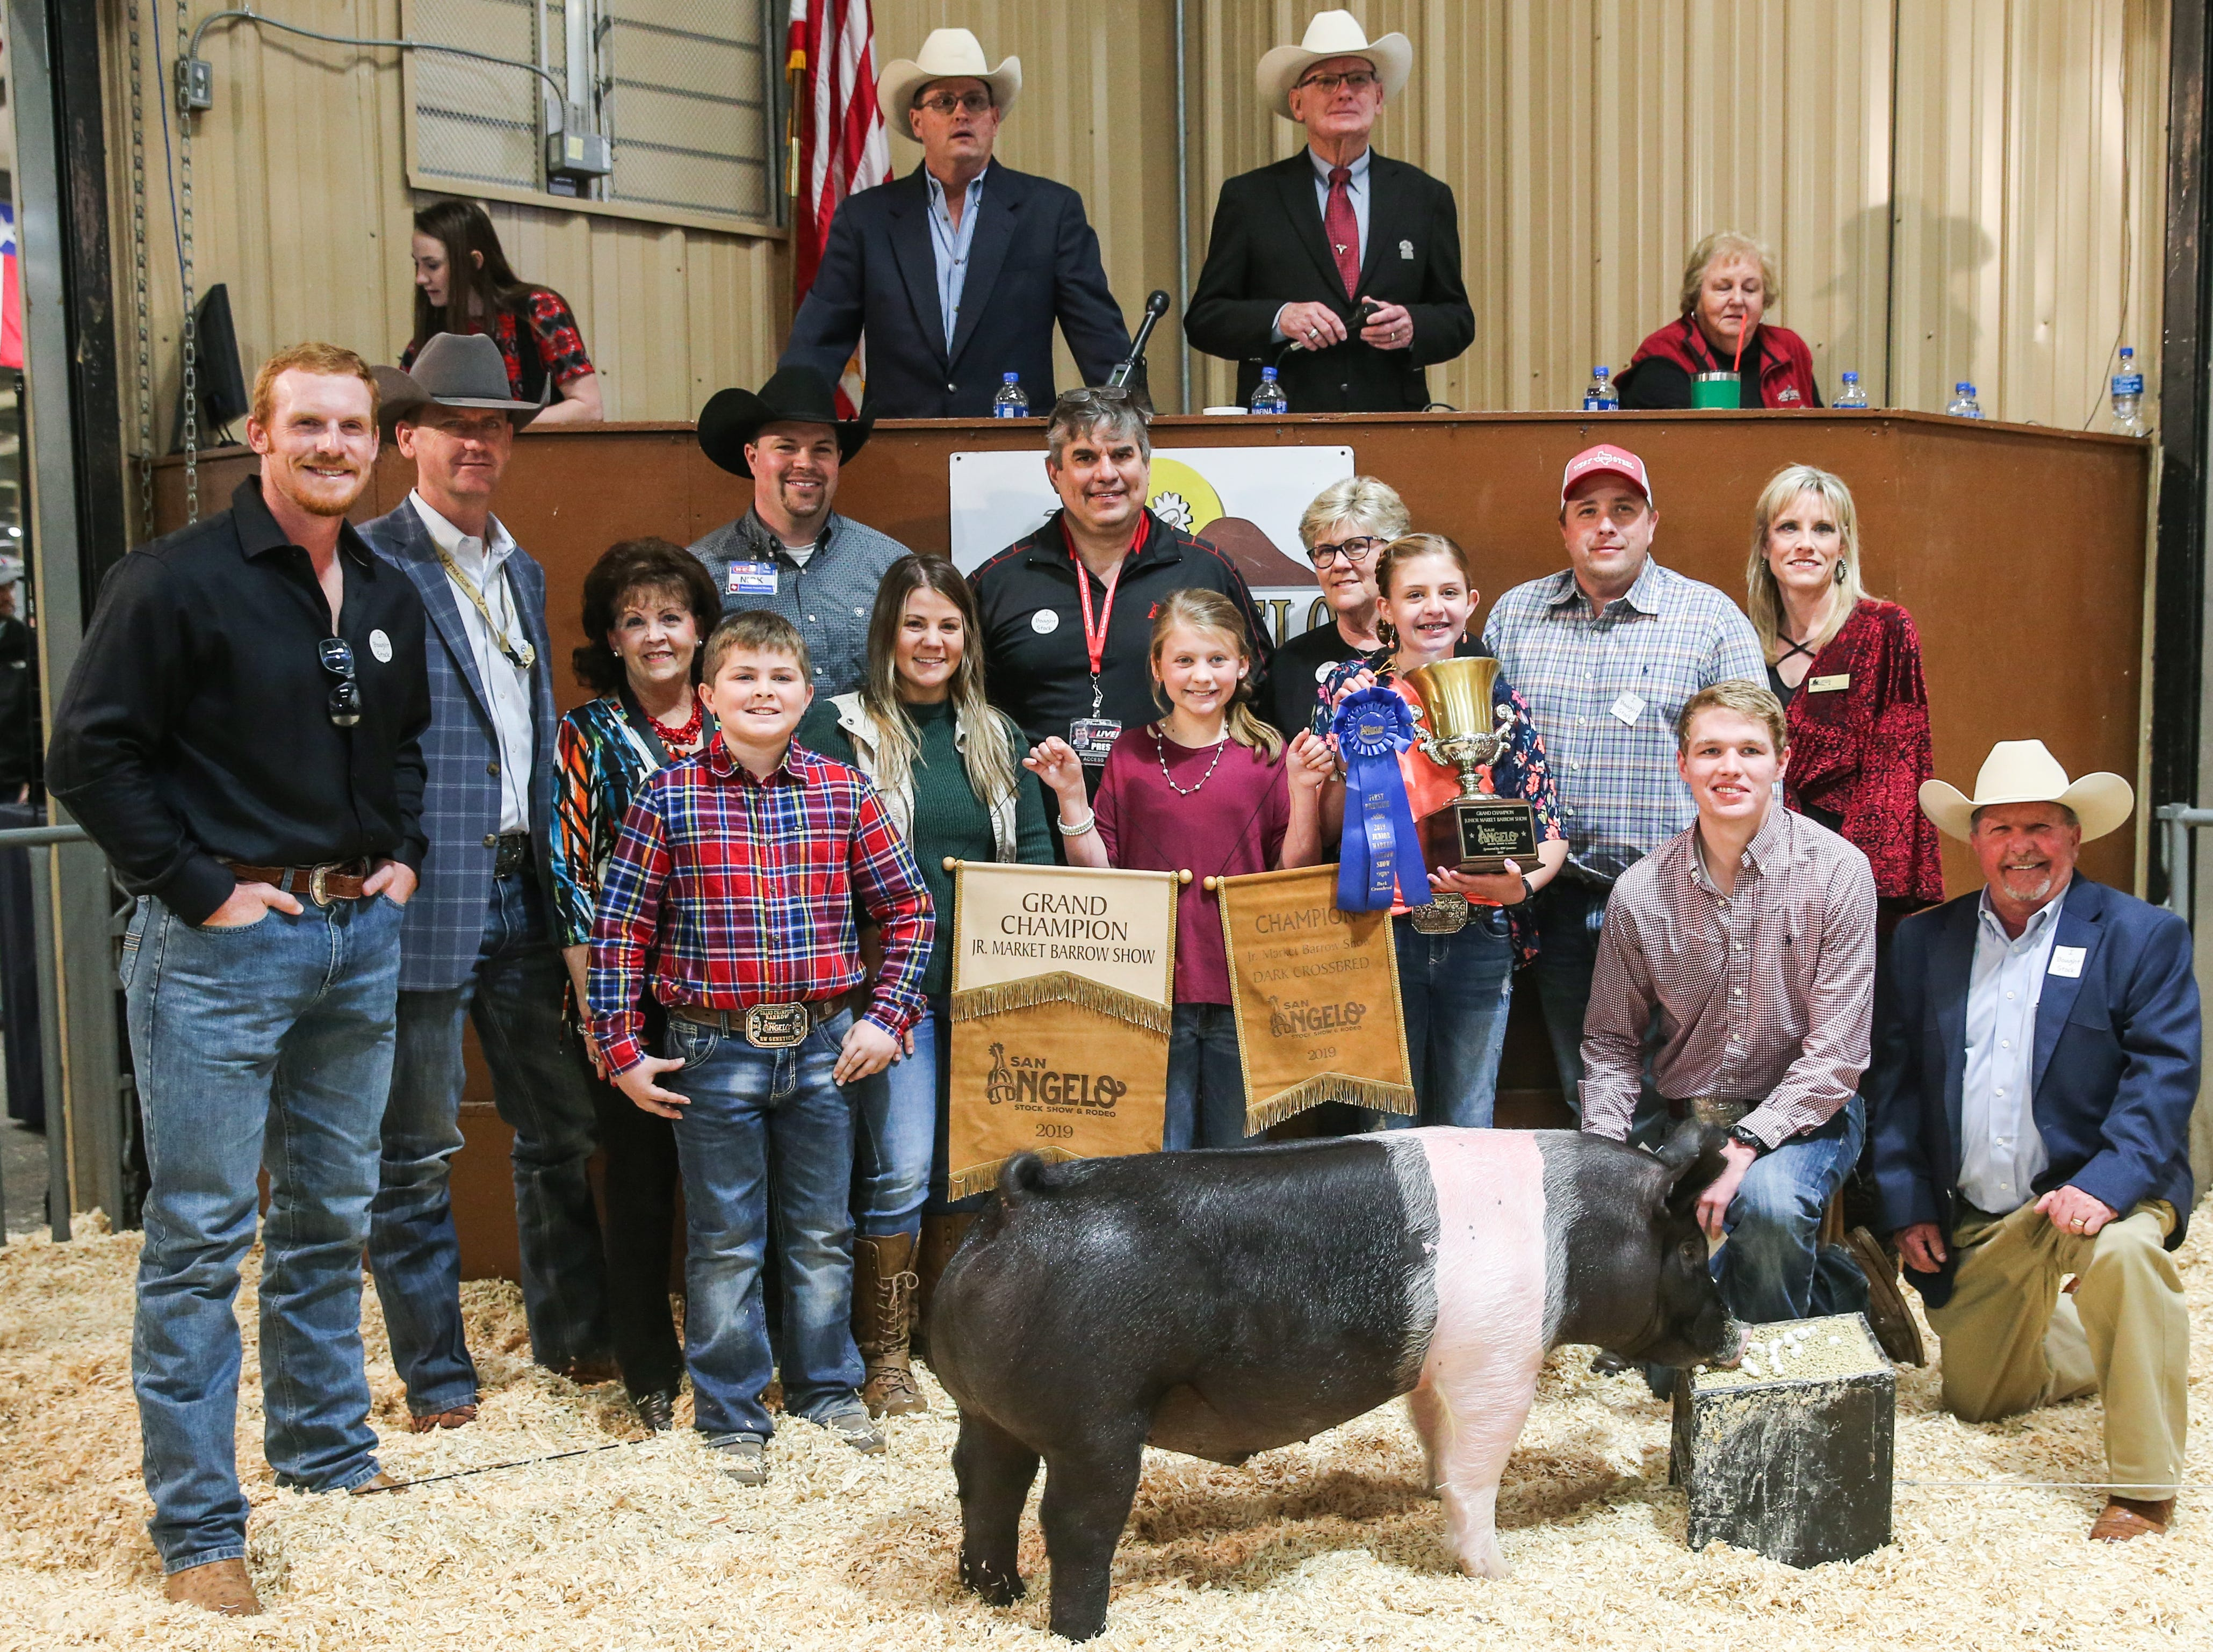 Grand Champion Barrow exhibited by Kaden Mason of Montgomery County 4-H, sold for $13,000.From left to right: Rush Seaver, 1CFCU Insurance Services; Sean Carter, Gandy Ink; Vicki Loso, 1st Community Federal Credit Union; Kaden Mason (exhibitor); Nick George, H-E-B; Sara Konop, Taco Bueno; Joe Hyde, San Angelo Live; Kendall Shackelford (banner holder); Pattie Self, Automatic Fire Protection; McKinley Tucker (trophy holder); Bubba Davis, West Texas Steel; Nolan McGarraugh (holding lot number); Karee Wiggins, Capital Farm Credit; Todd Price, Jim Bass Ford. Not pictured: Intrepid Electric, Weatherby Ranch, and Housley Communications.